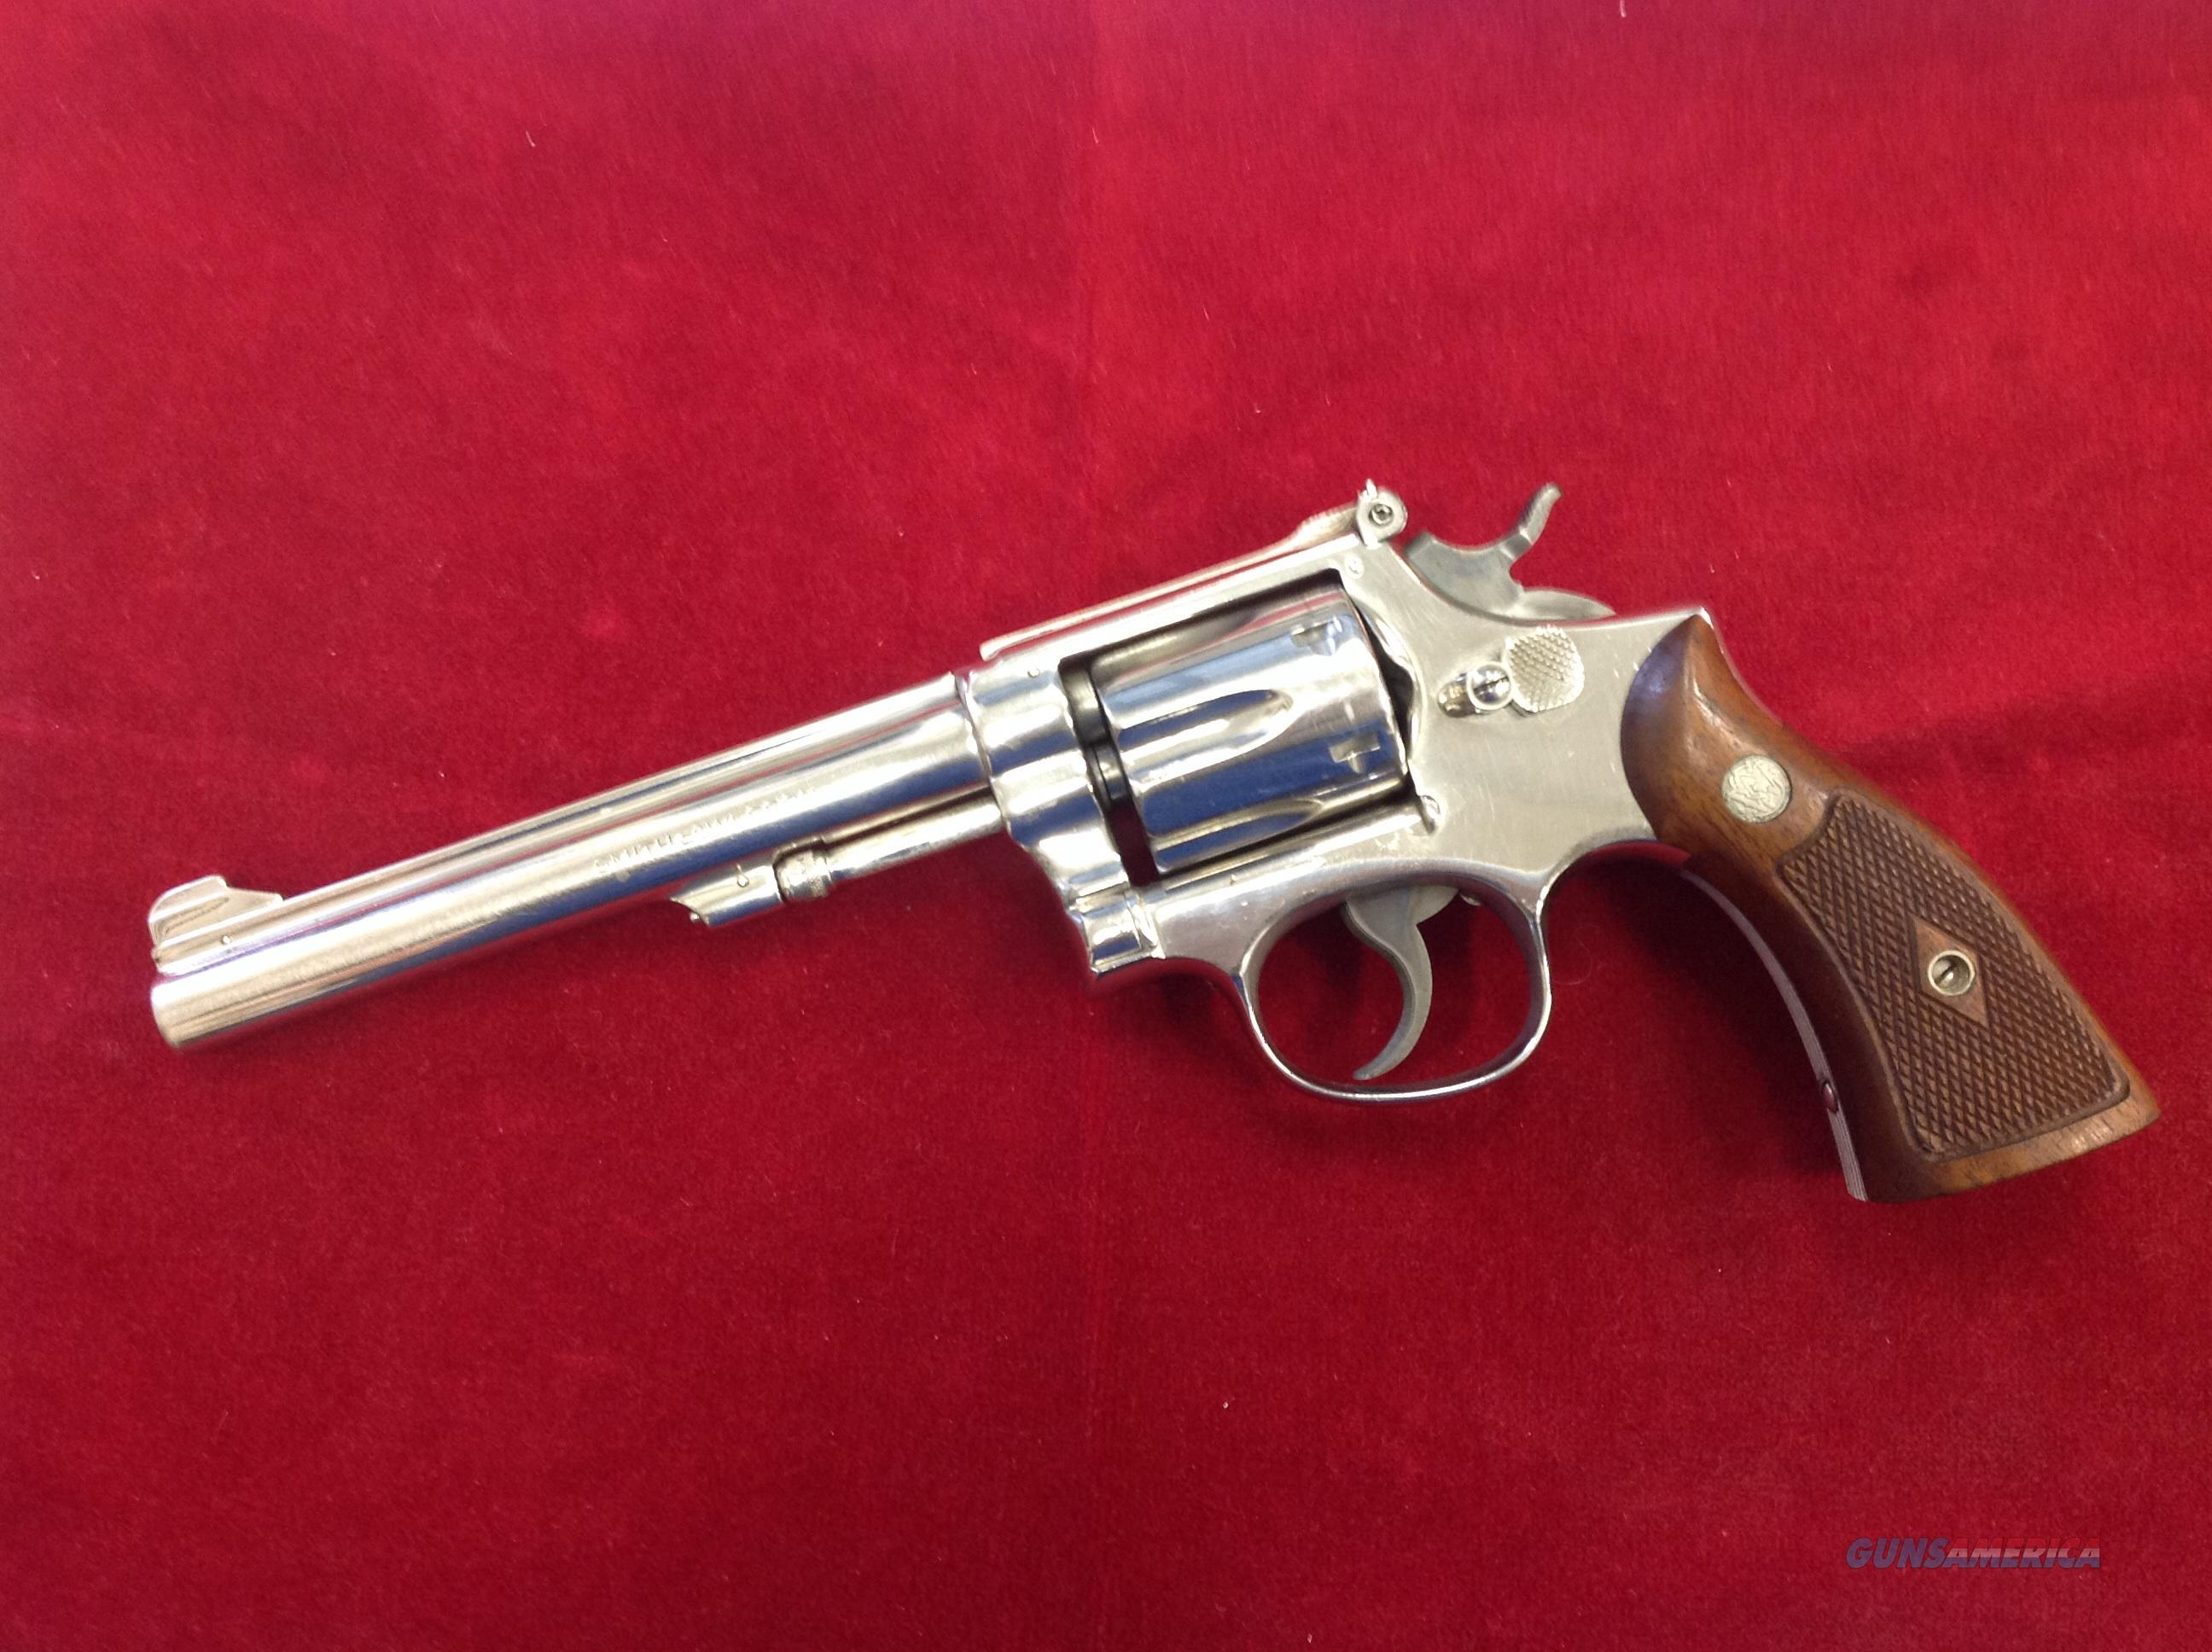 S&W Pre-17 22LR  Guns > Pistols > Smith & Wesson Revolvers > Full Frame Revolver